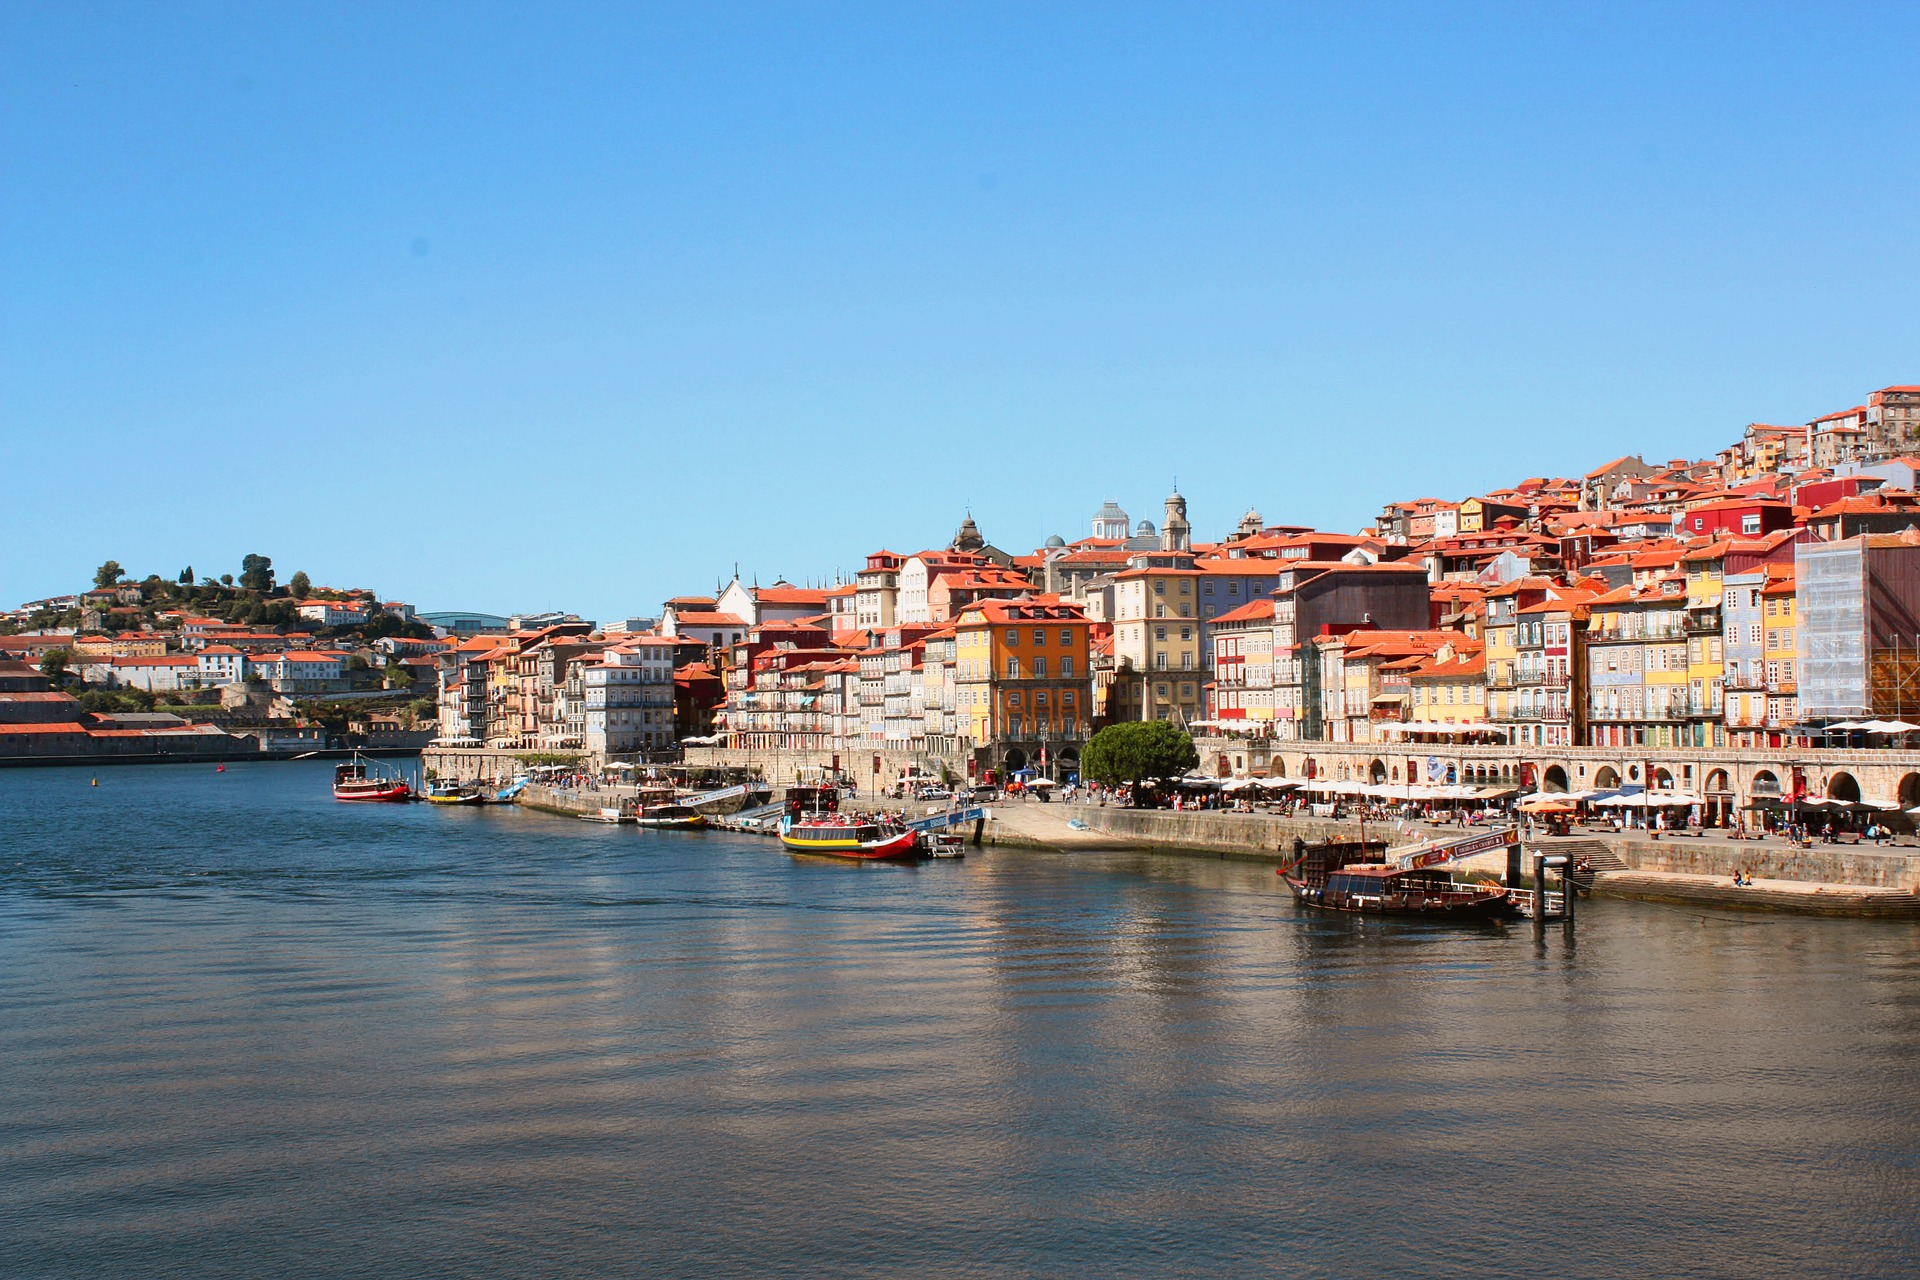 O Centro Histórico do Porto é o 3º mais popular do mundo no Instagram